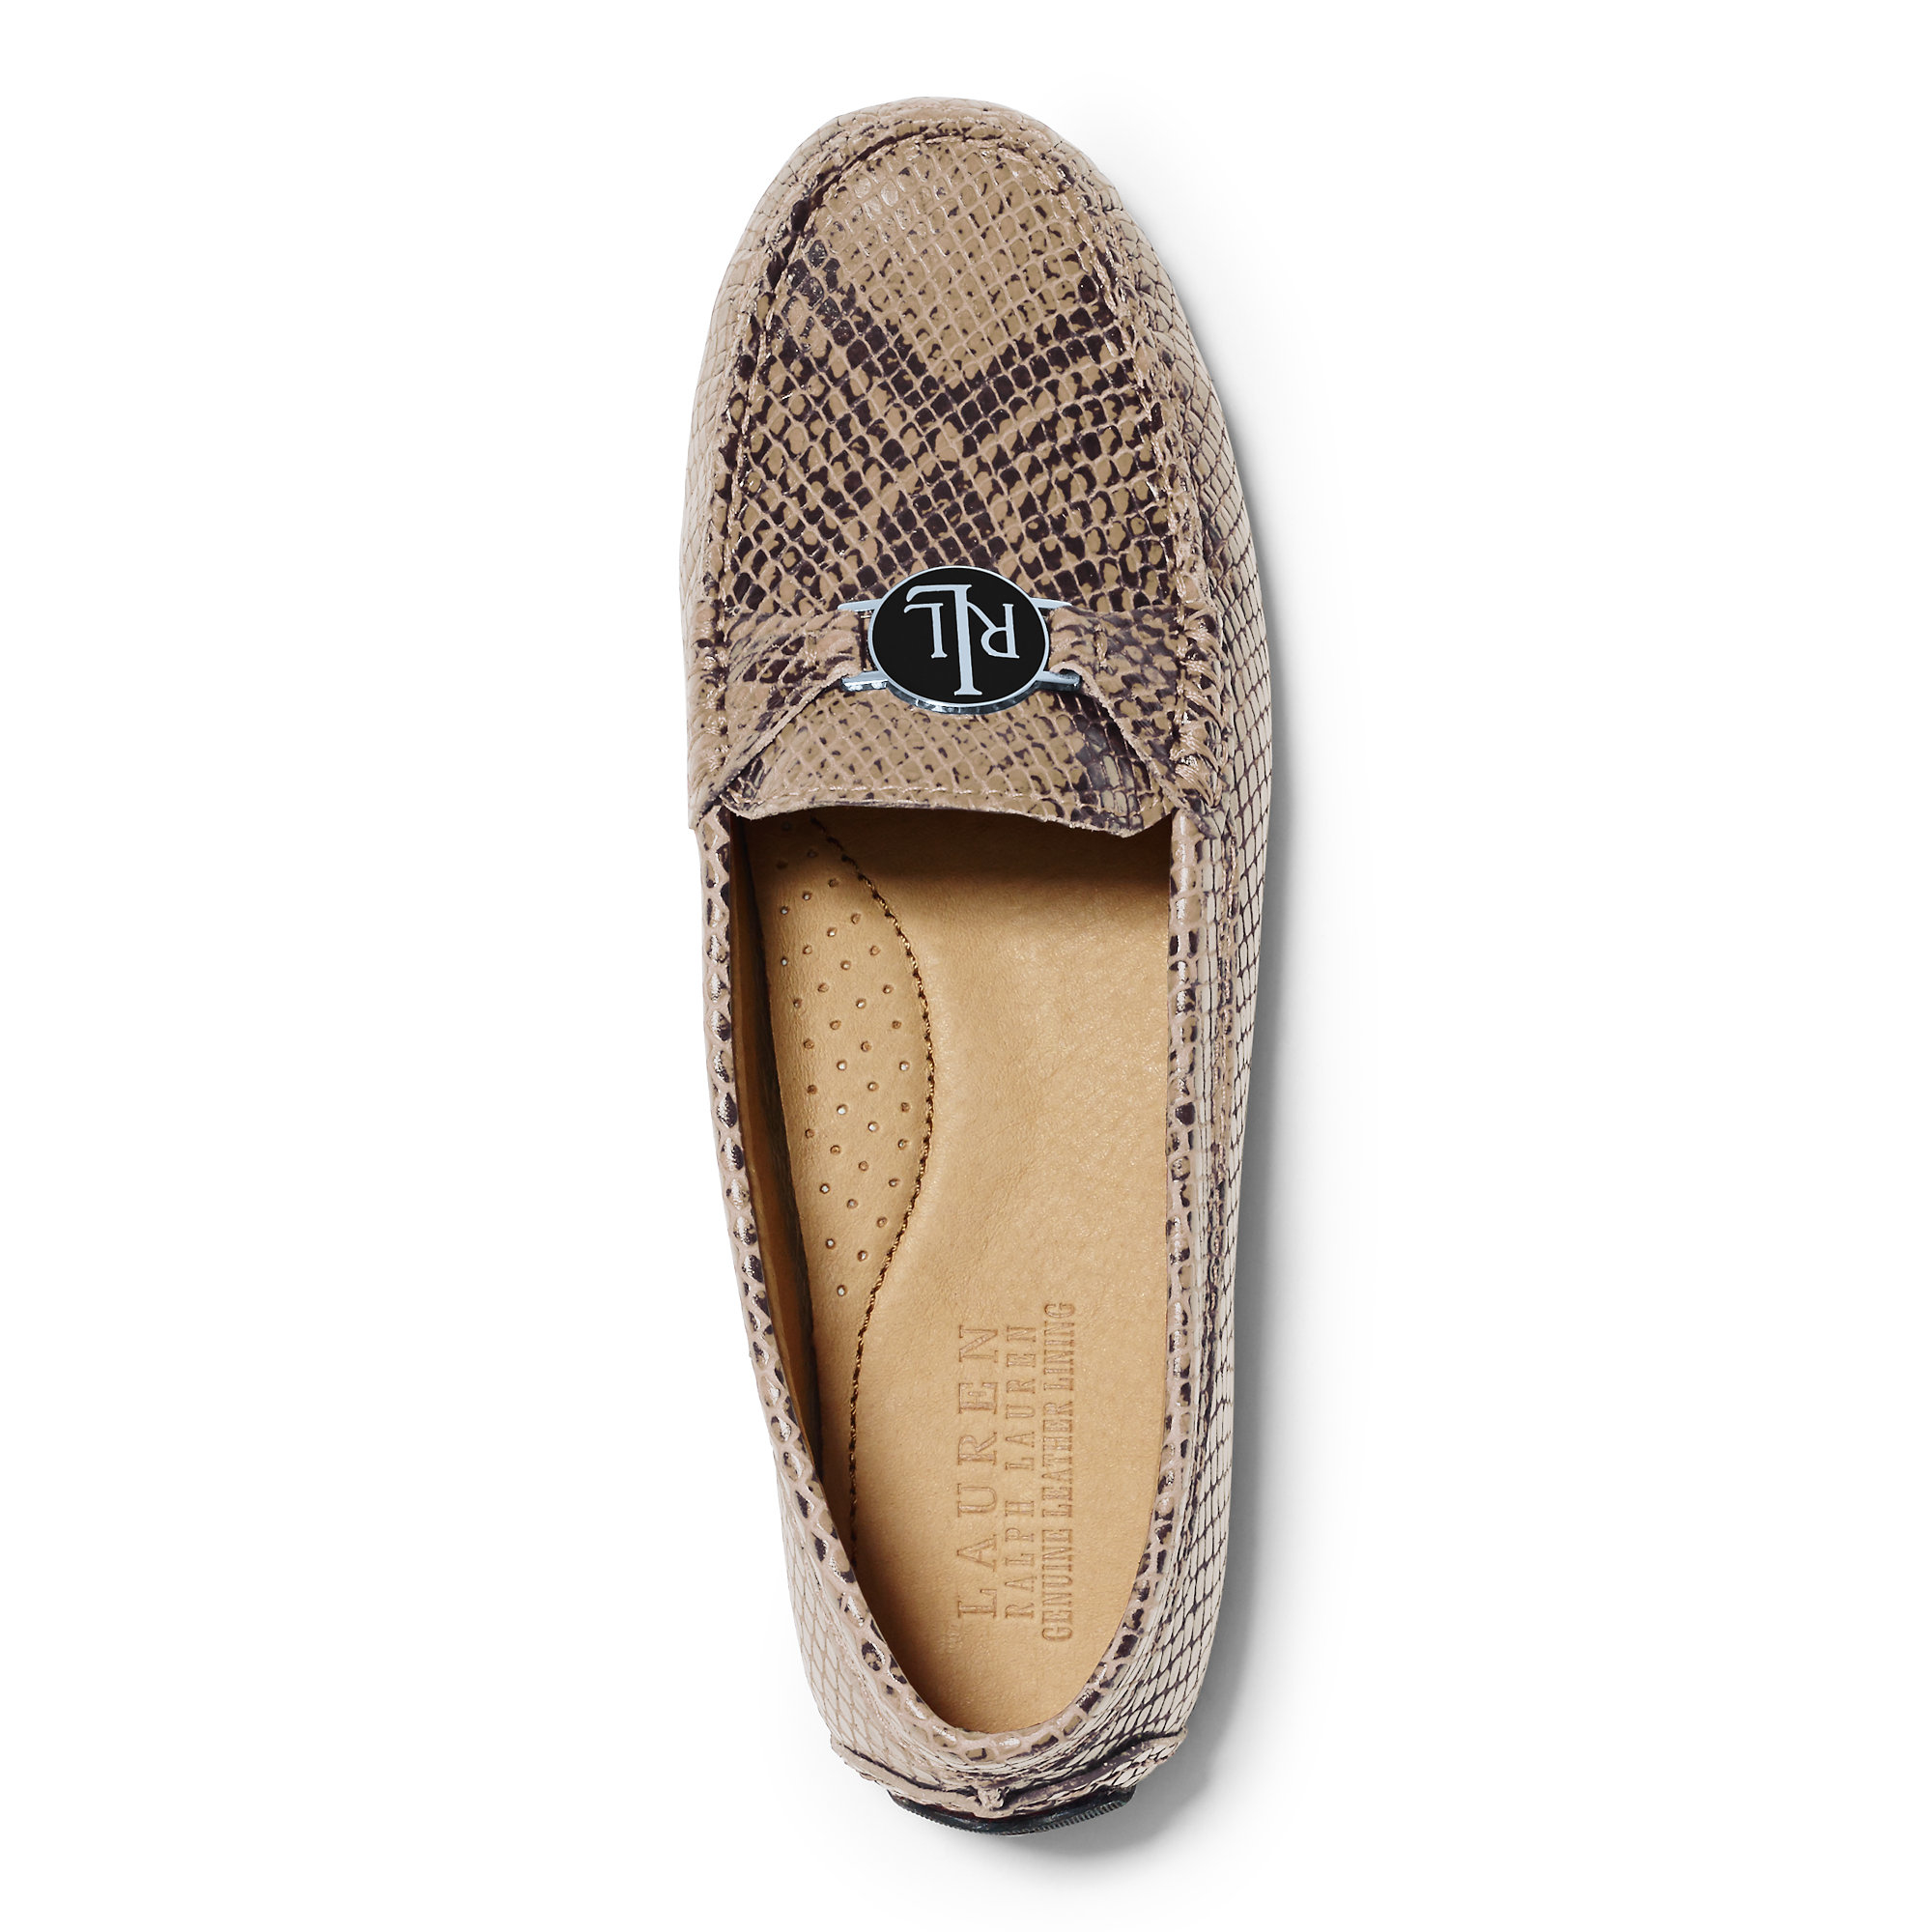 199dcd004b3 Lyst - Ralph Lauren Carley Python-embossed Loafer in Natural